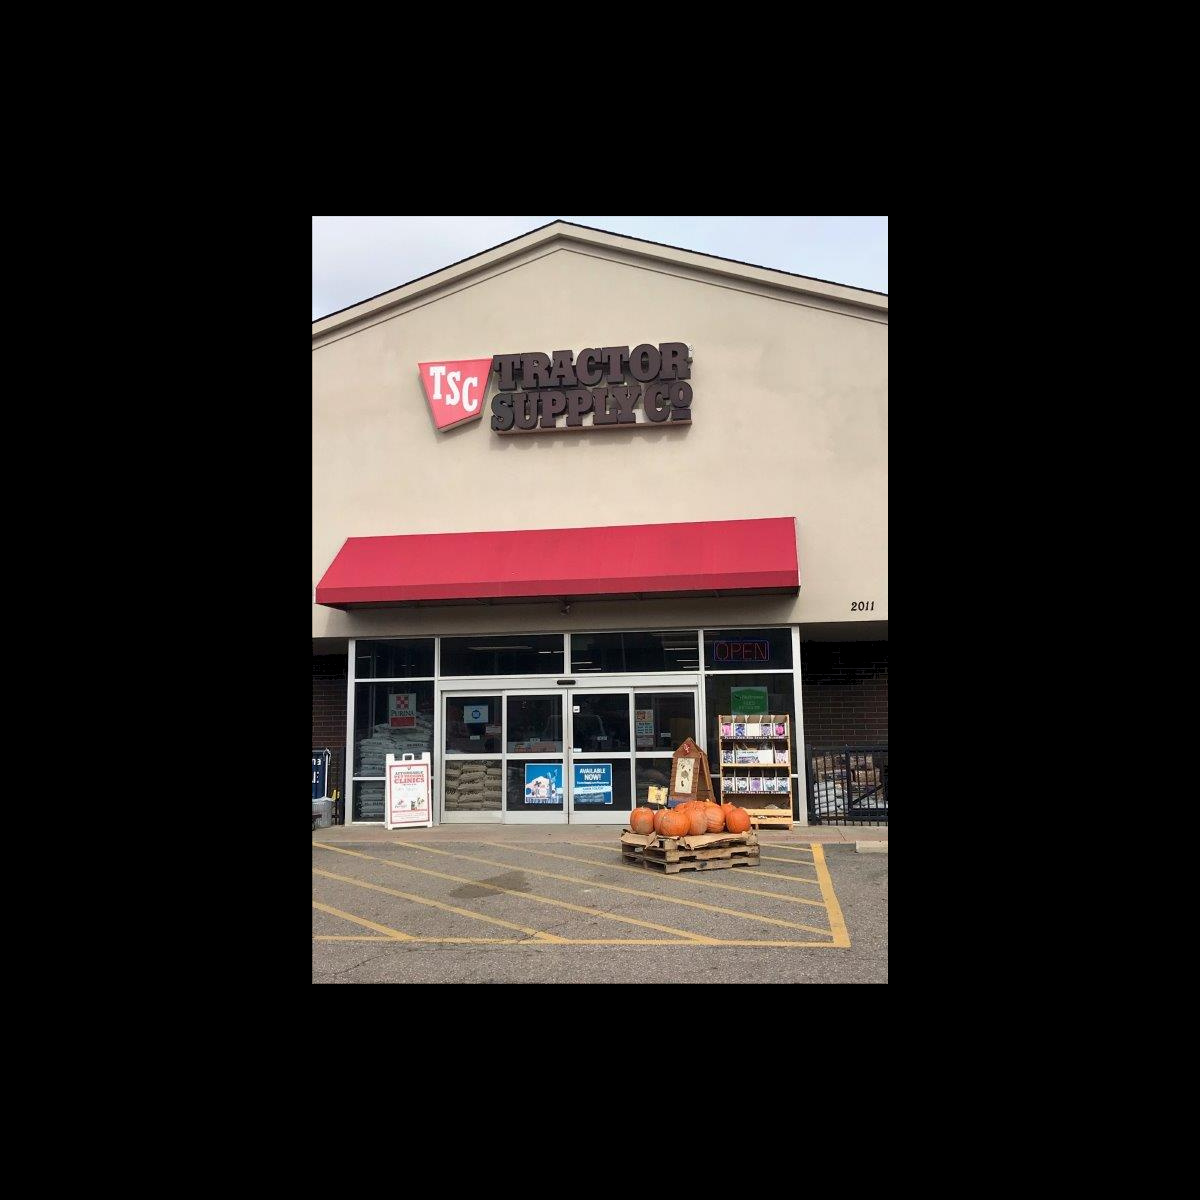 Congratulations to the Business of the Month … Tractor Supply Co